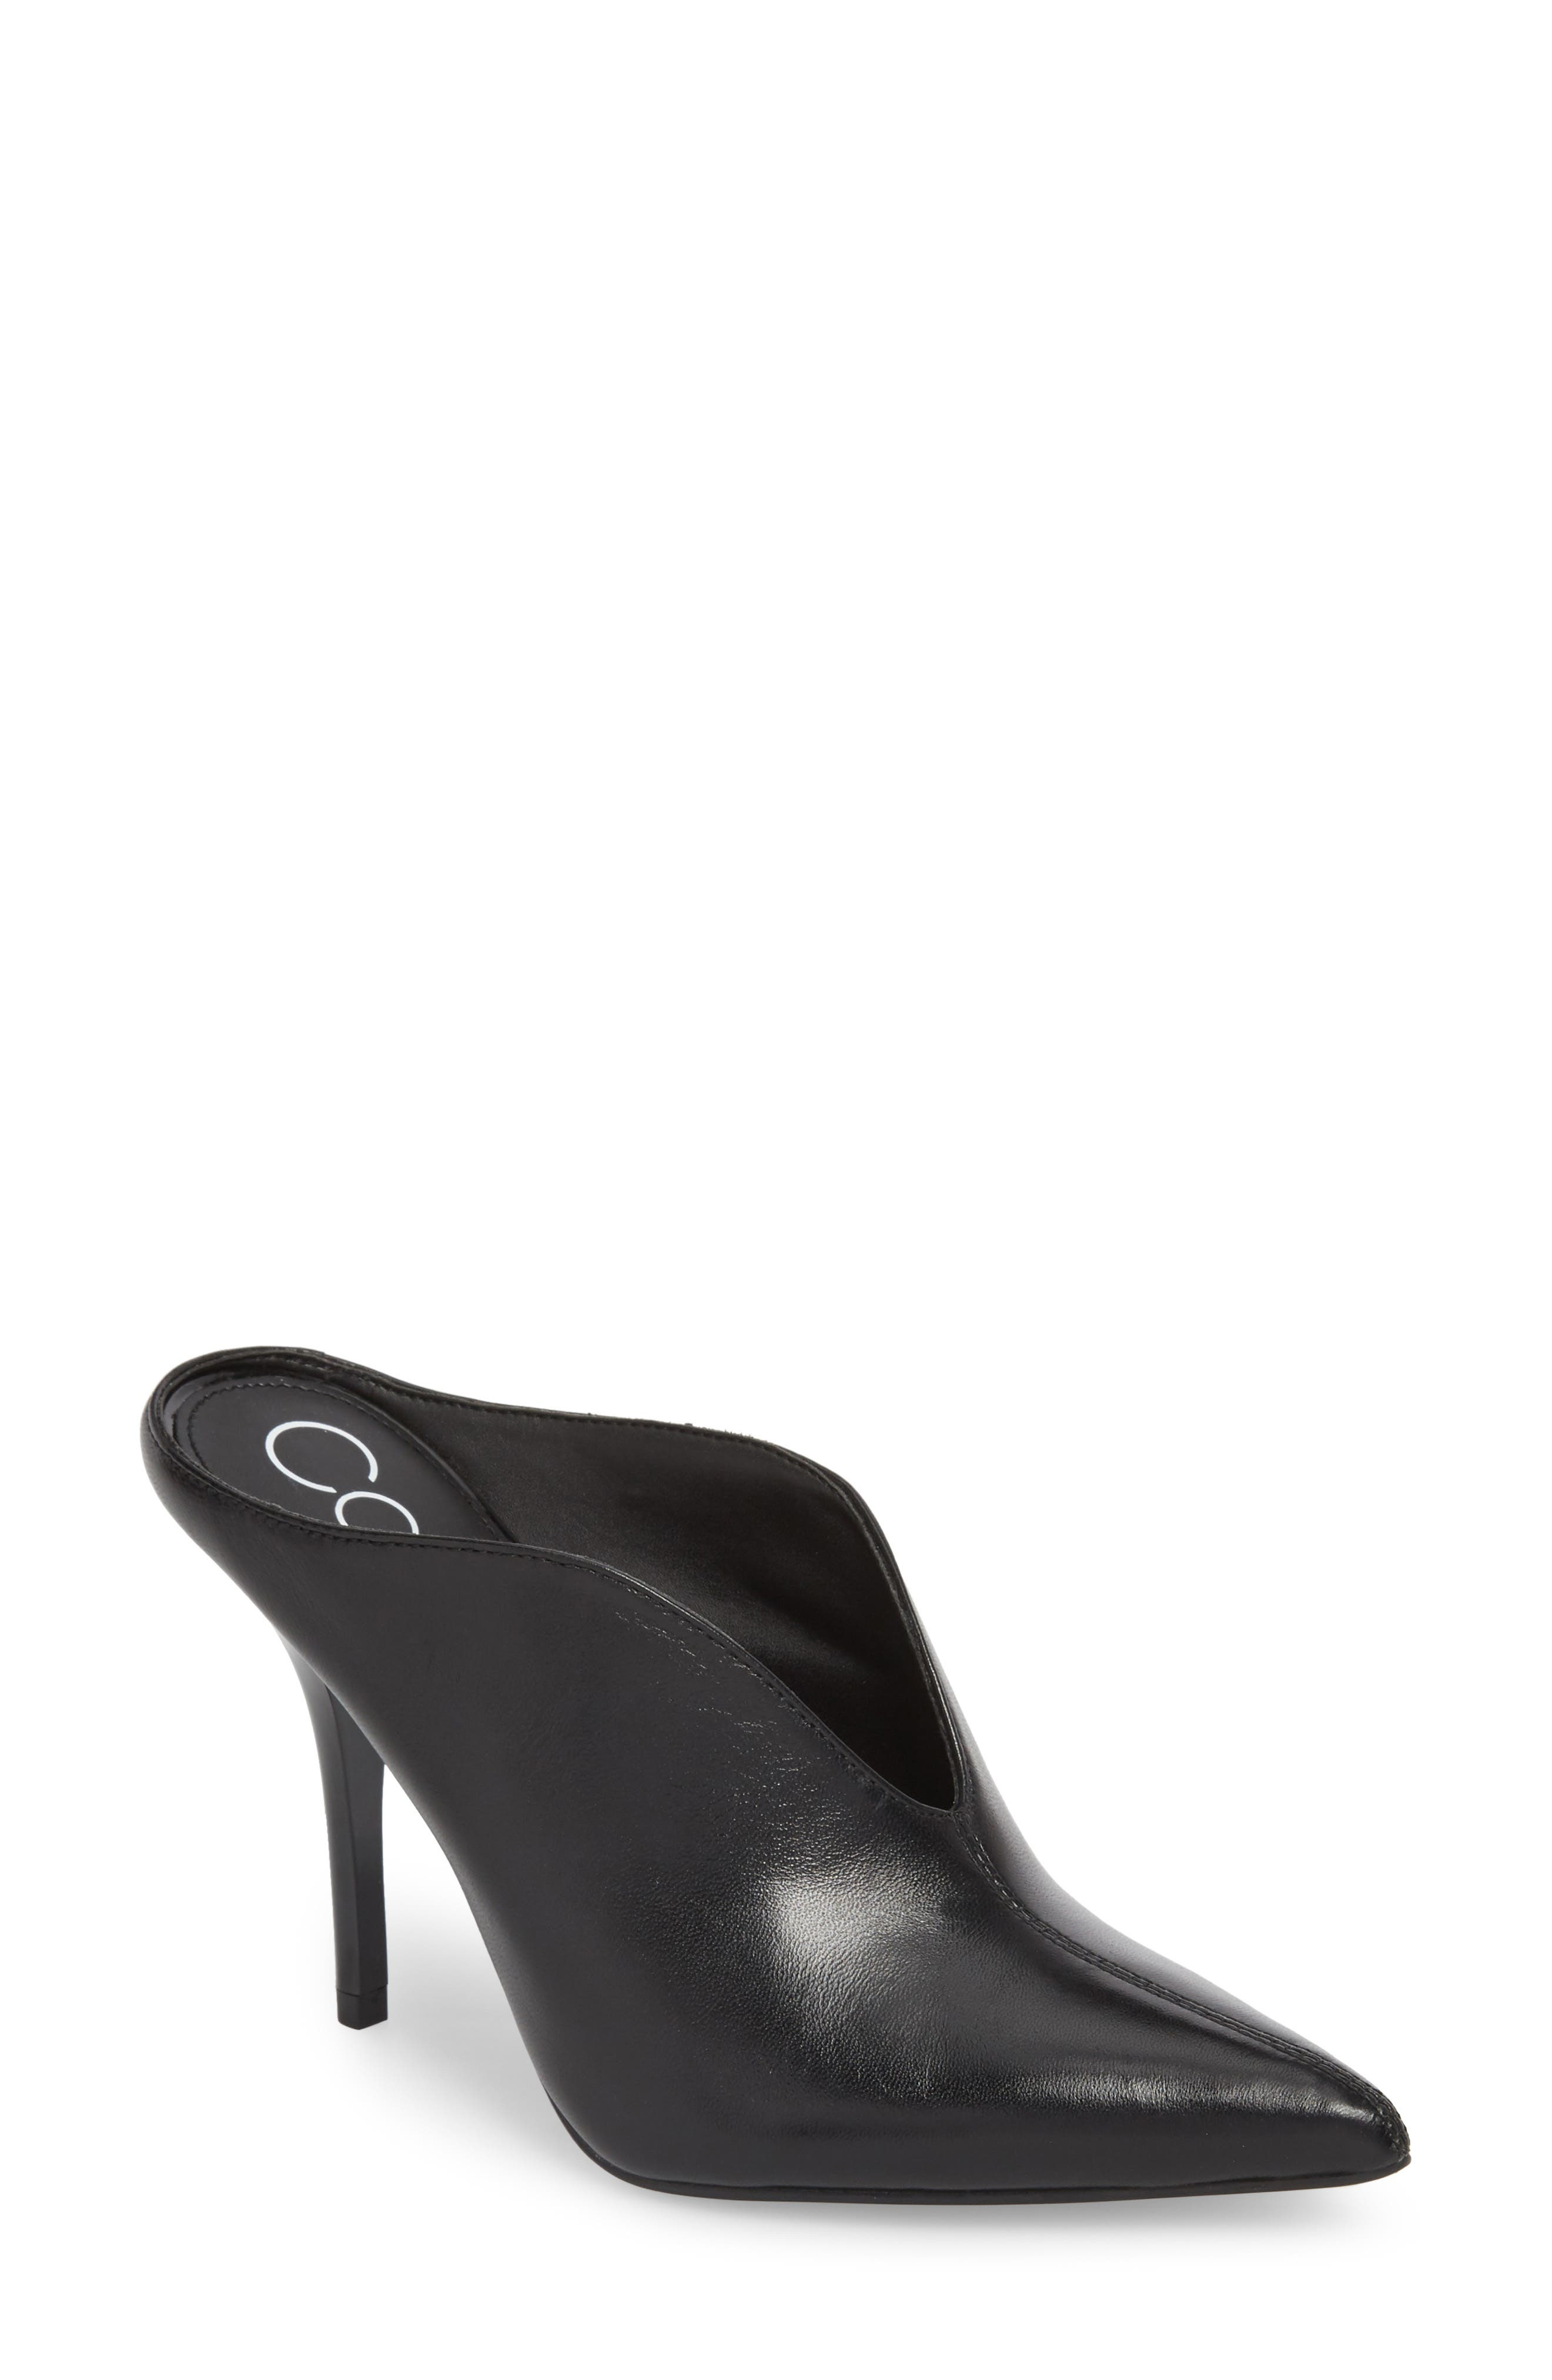 CALVIN KLEIN Mallie Pointy Toe Mule, Main, color, BLACK LEATHER